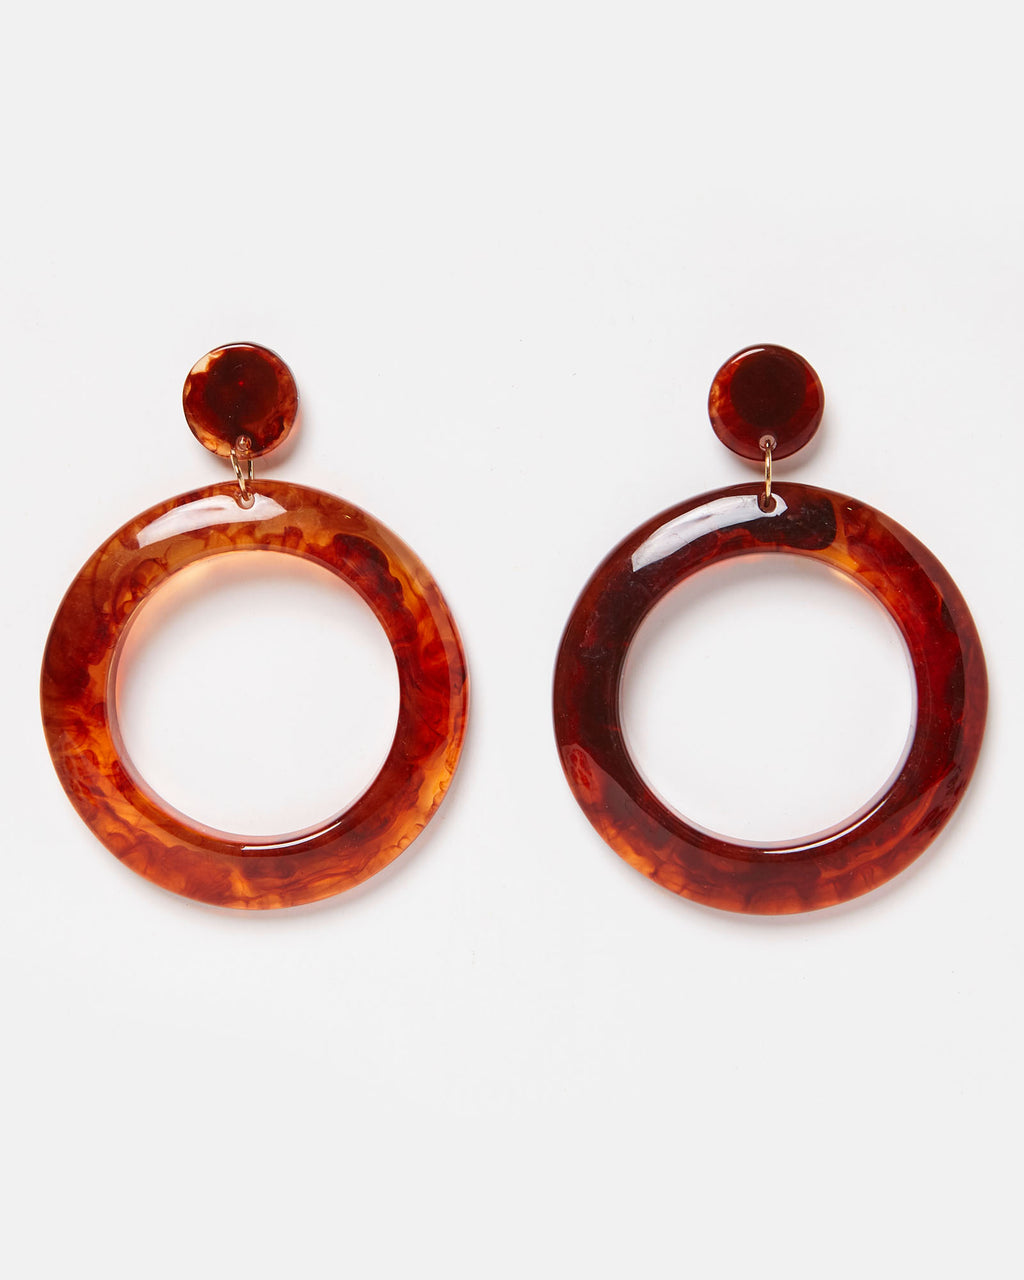 Izoa Sofia Earrings Amber Resin